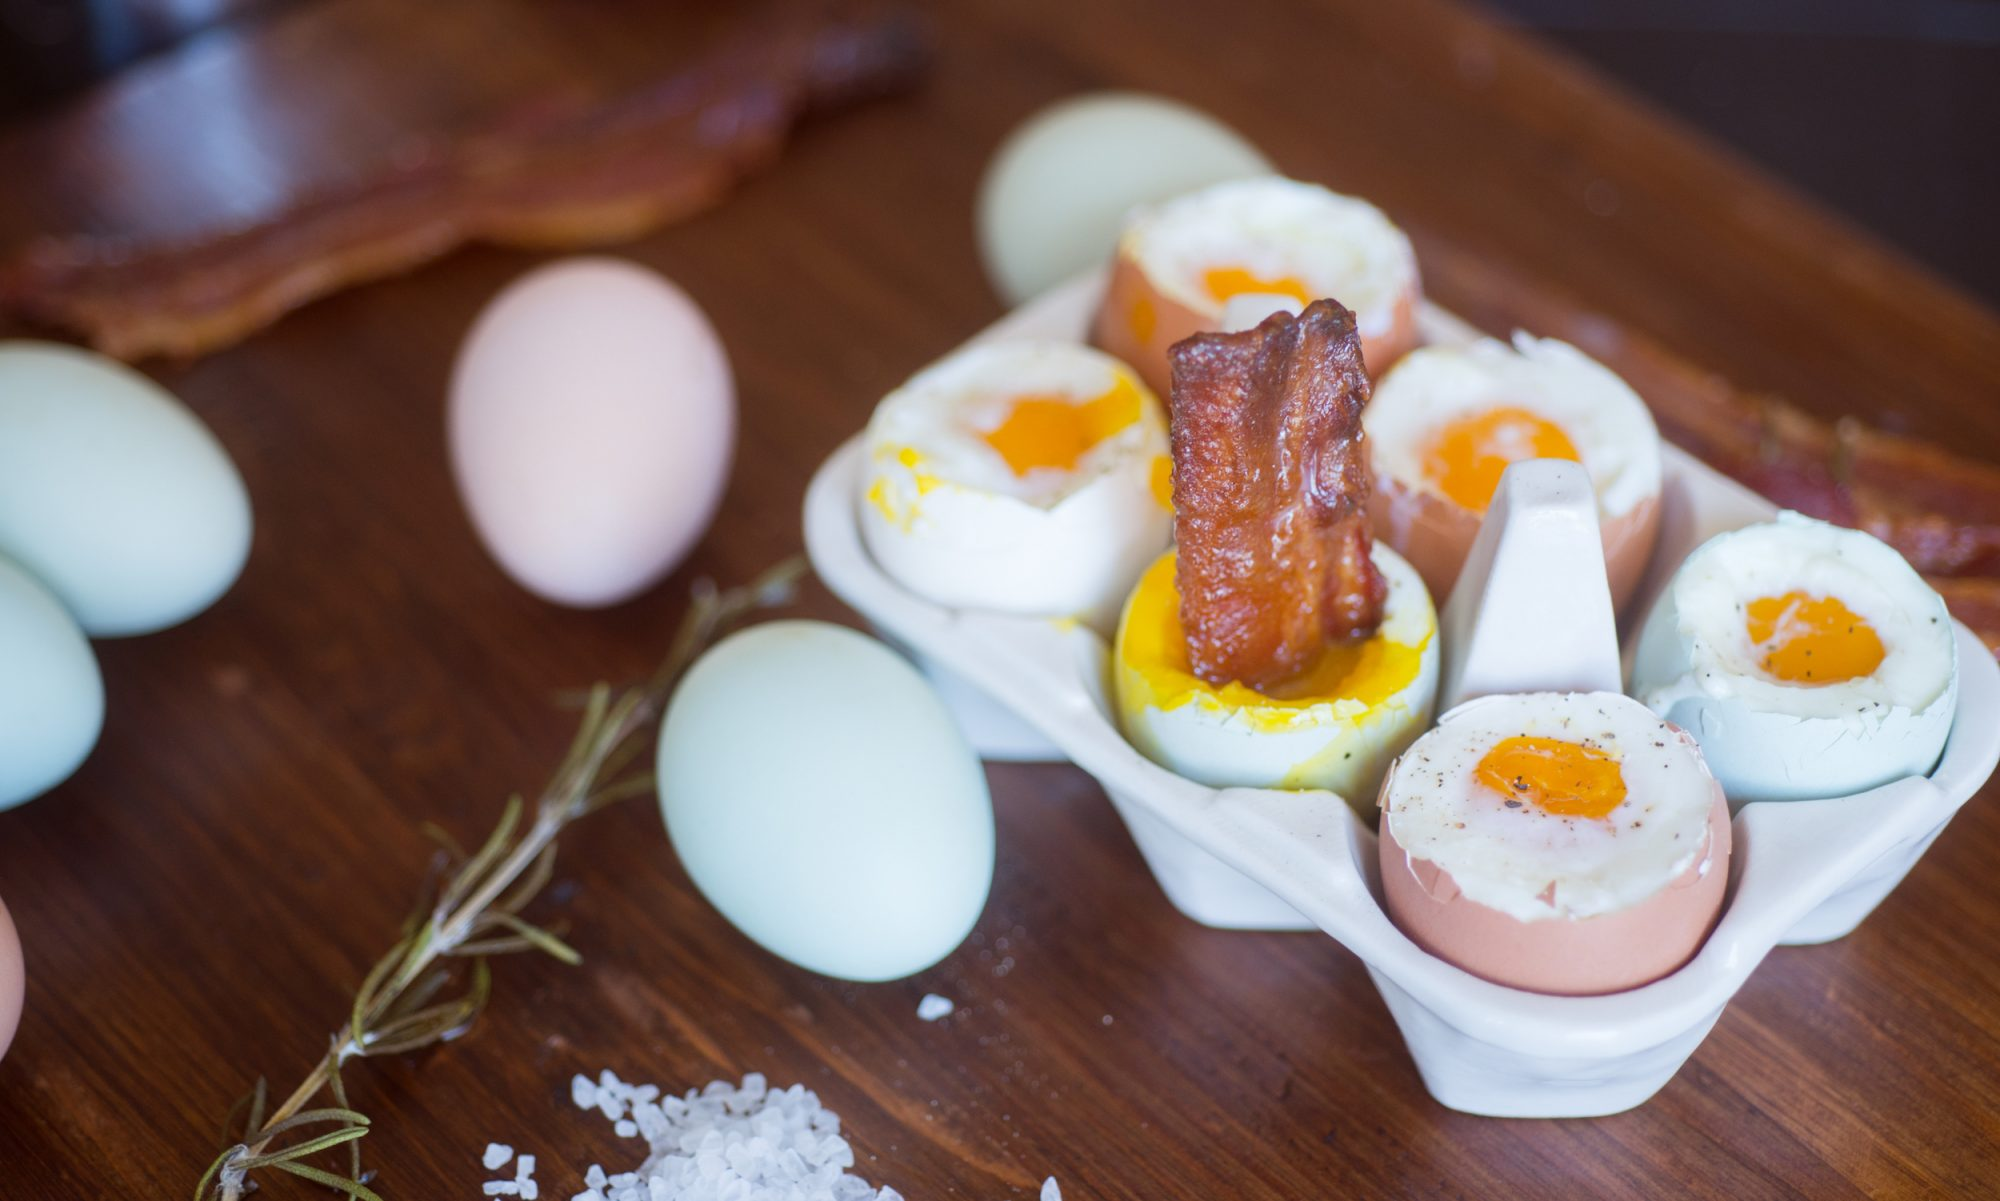 Candied Bacon with Soft-Boiled Eggs Is a New Way to Make Your Favorite Breakfast